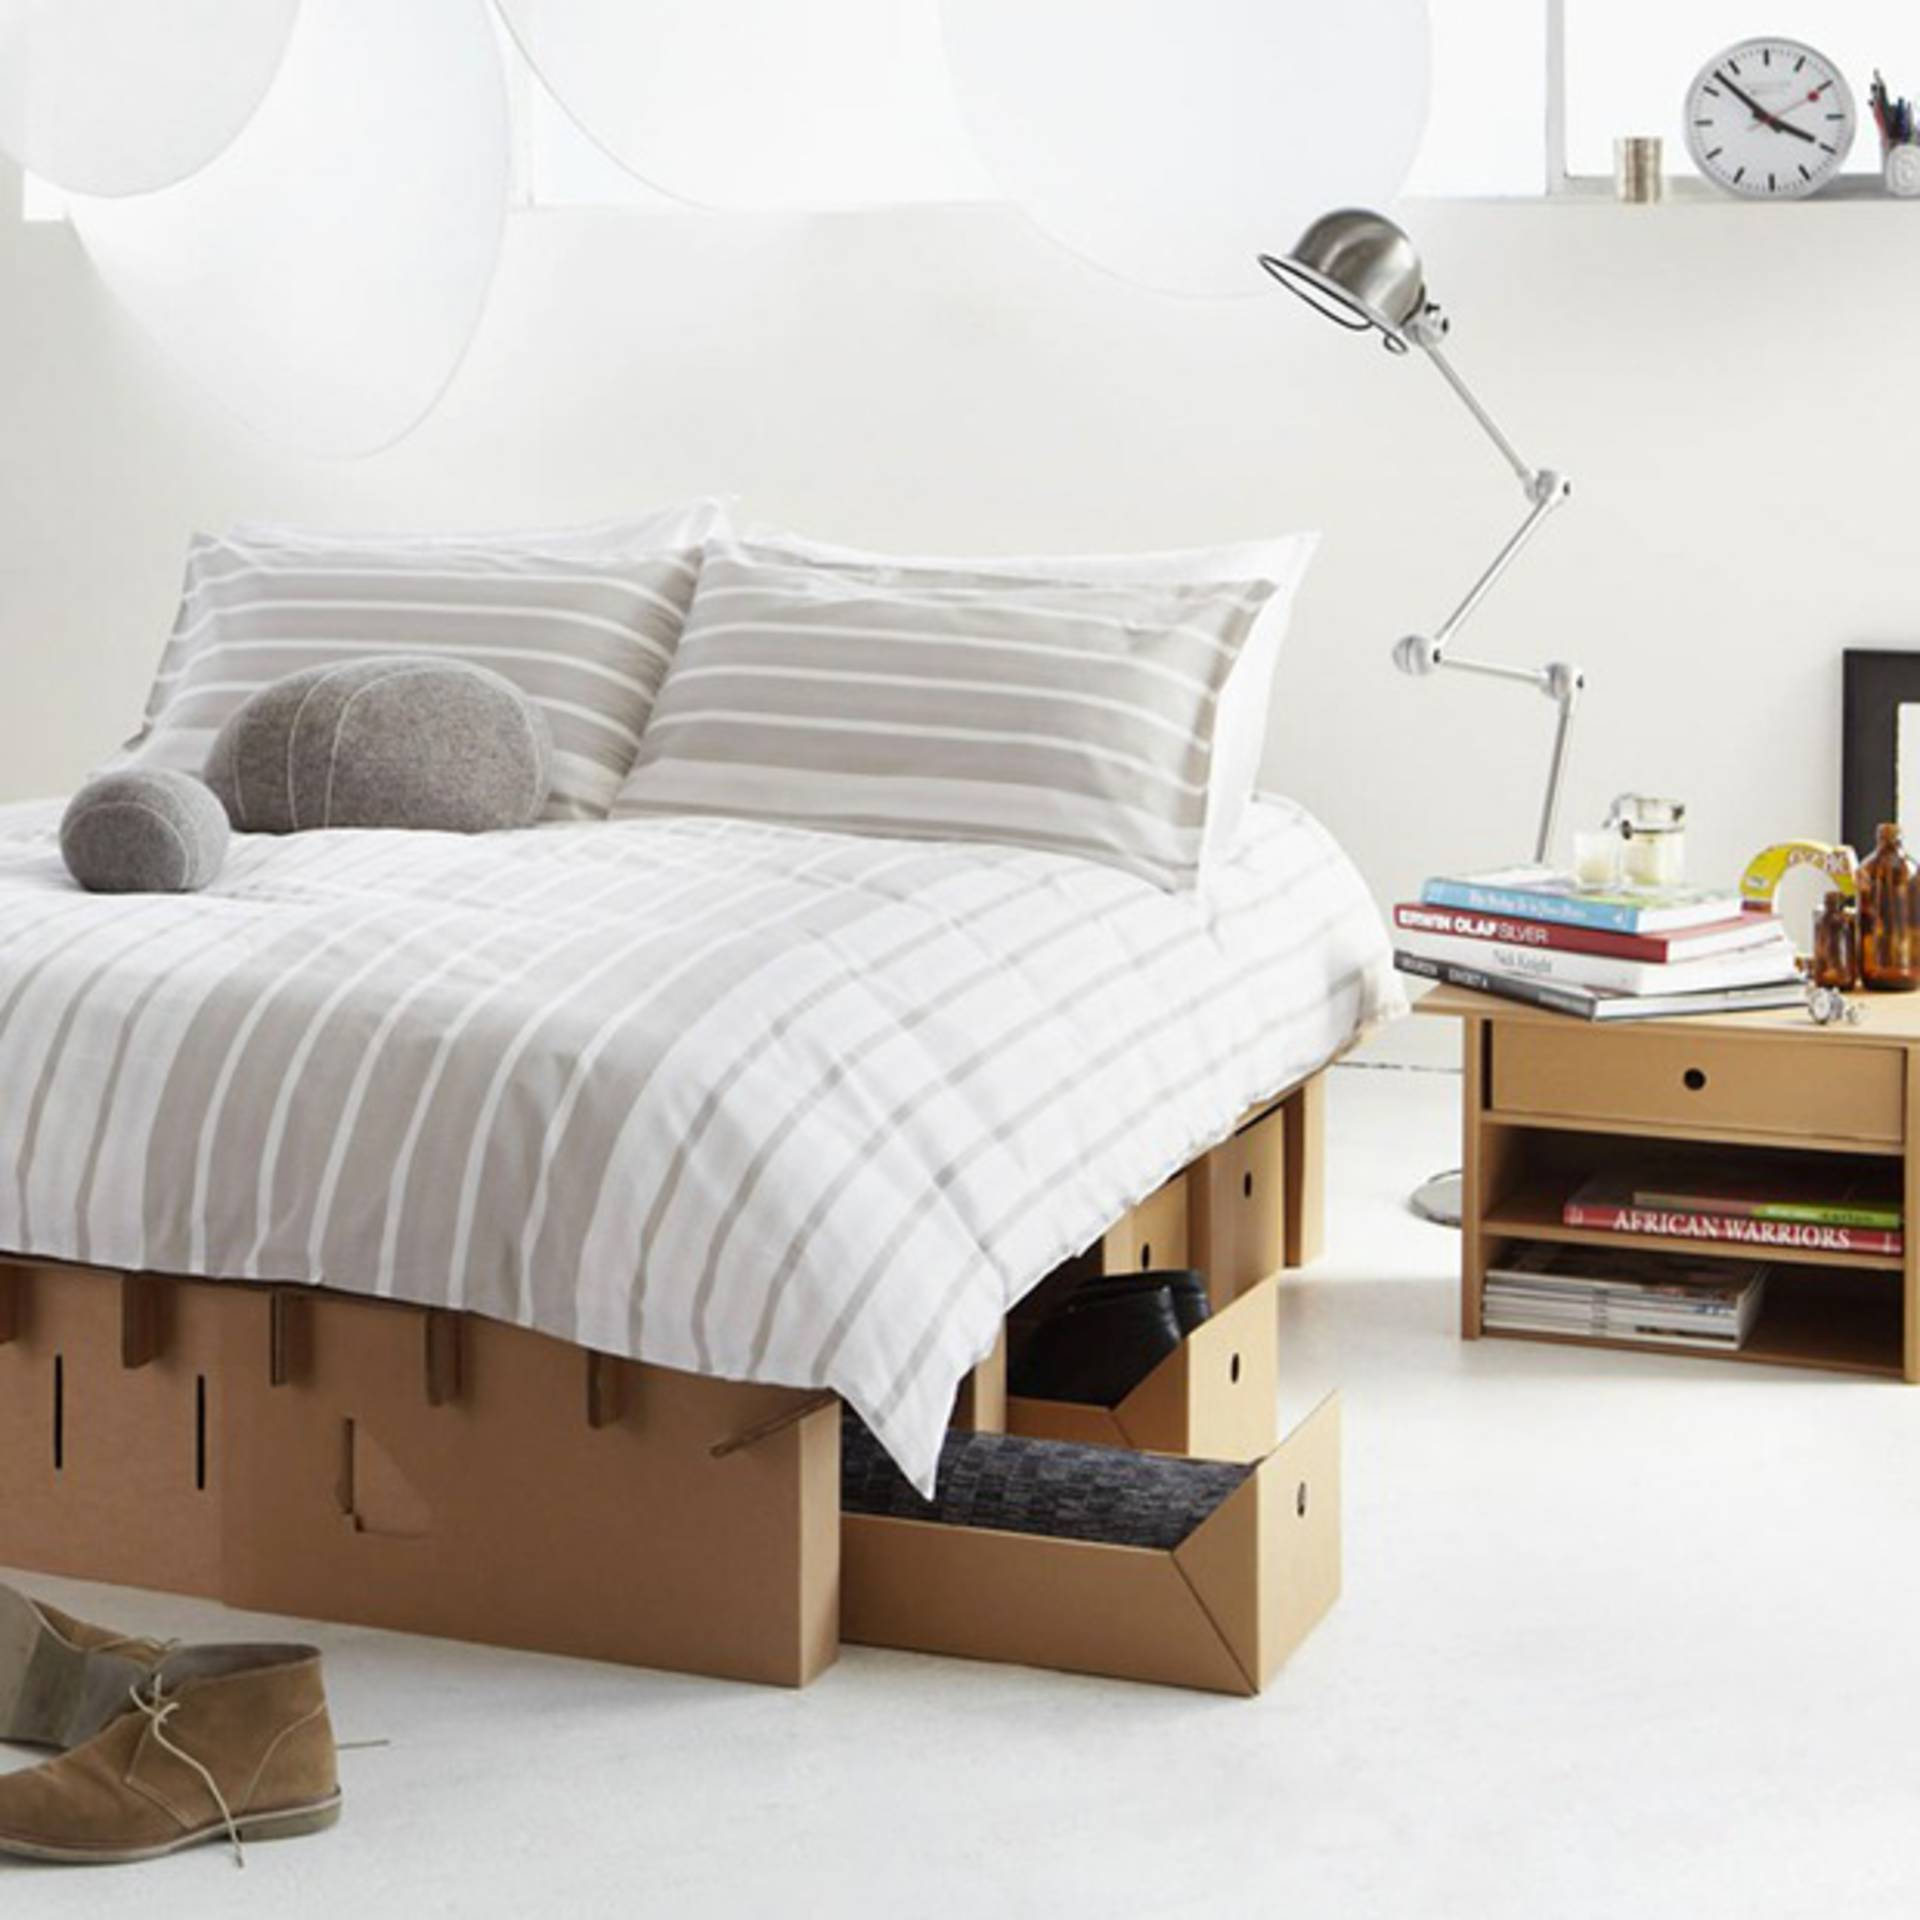 Eco friendly and affordable KARTON furniture   Home Reviews Eco friendly  and affordable KARTON furnitureEco Friendly Bedroom Furniture   Mattress. Eco Friendly Home Bedroom Furniture. Home Design Ideas